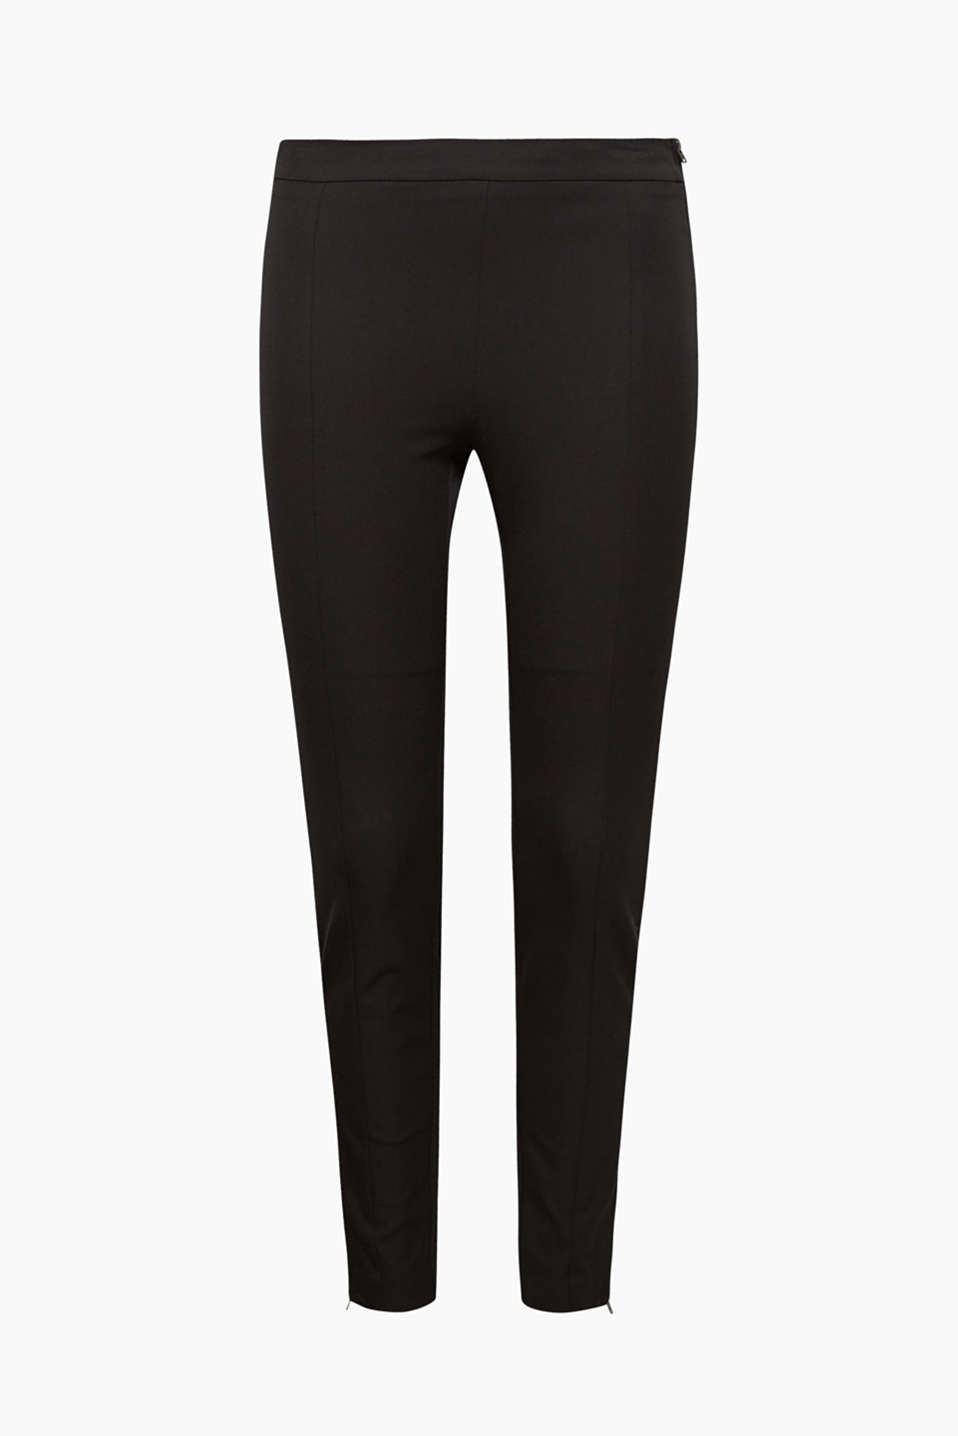 Conjures up a beautiful silhouette and great to mix and match: Stretch trousers with a side zip and hem zips!